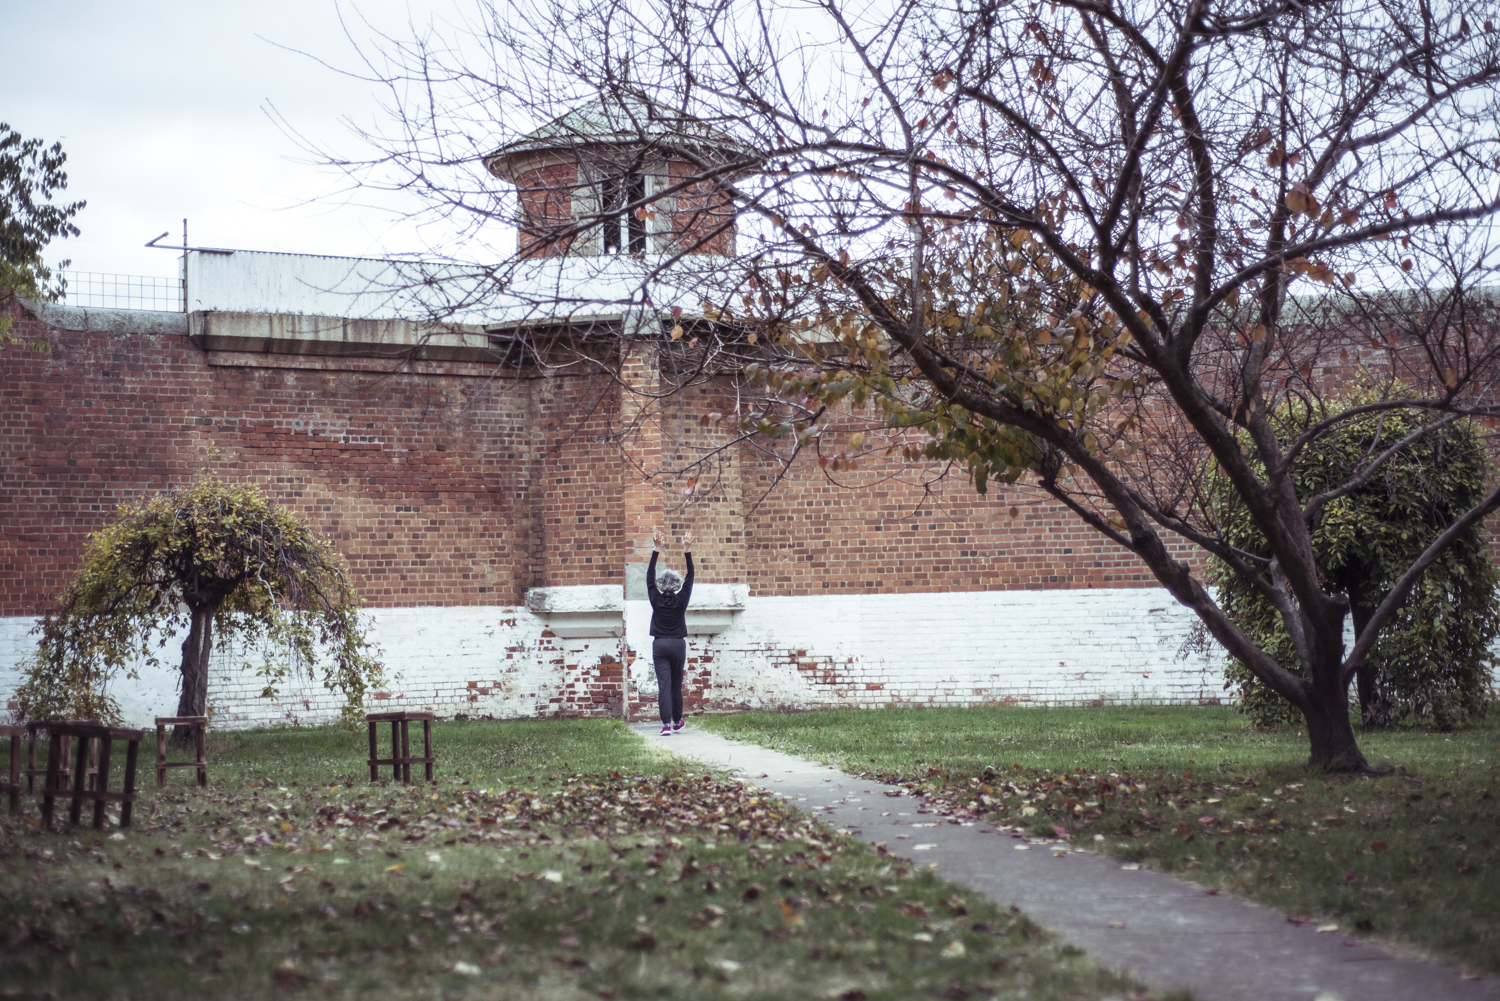 Dust to Dust, Castlemaine Gaol, Dja Dja Wurrung, 19 May 2018. Experimentation and conversation, with Shelley Lasica. Photo by Pippa Samaya.